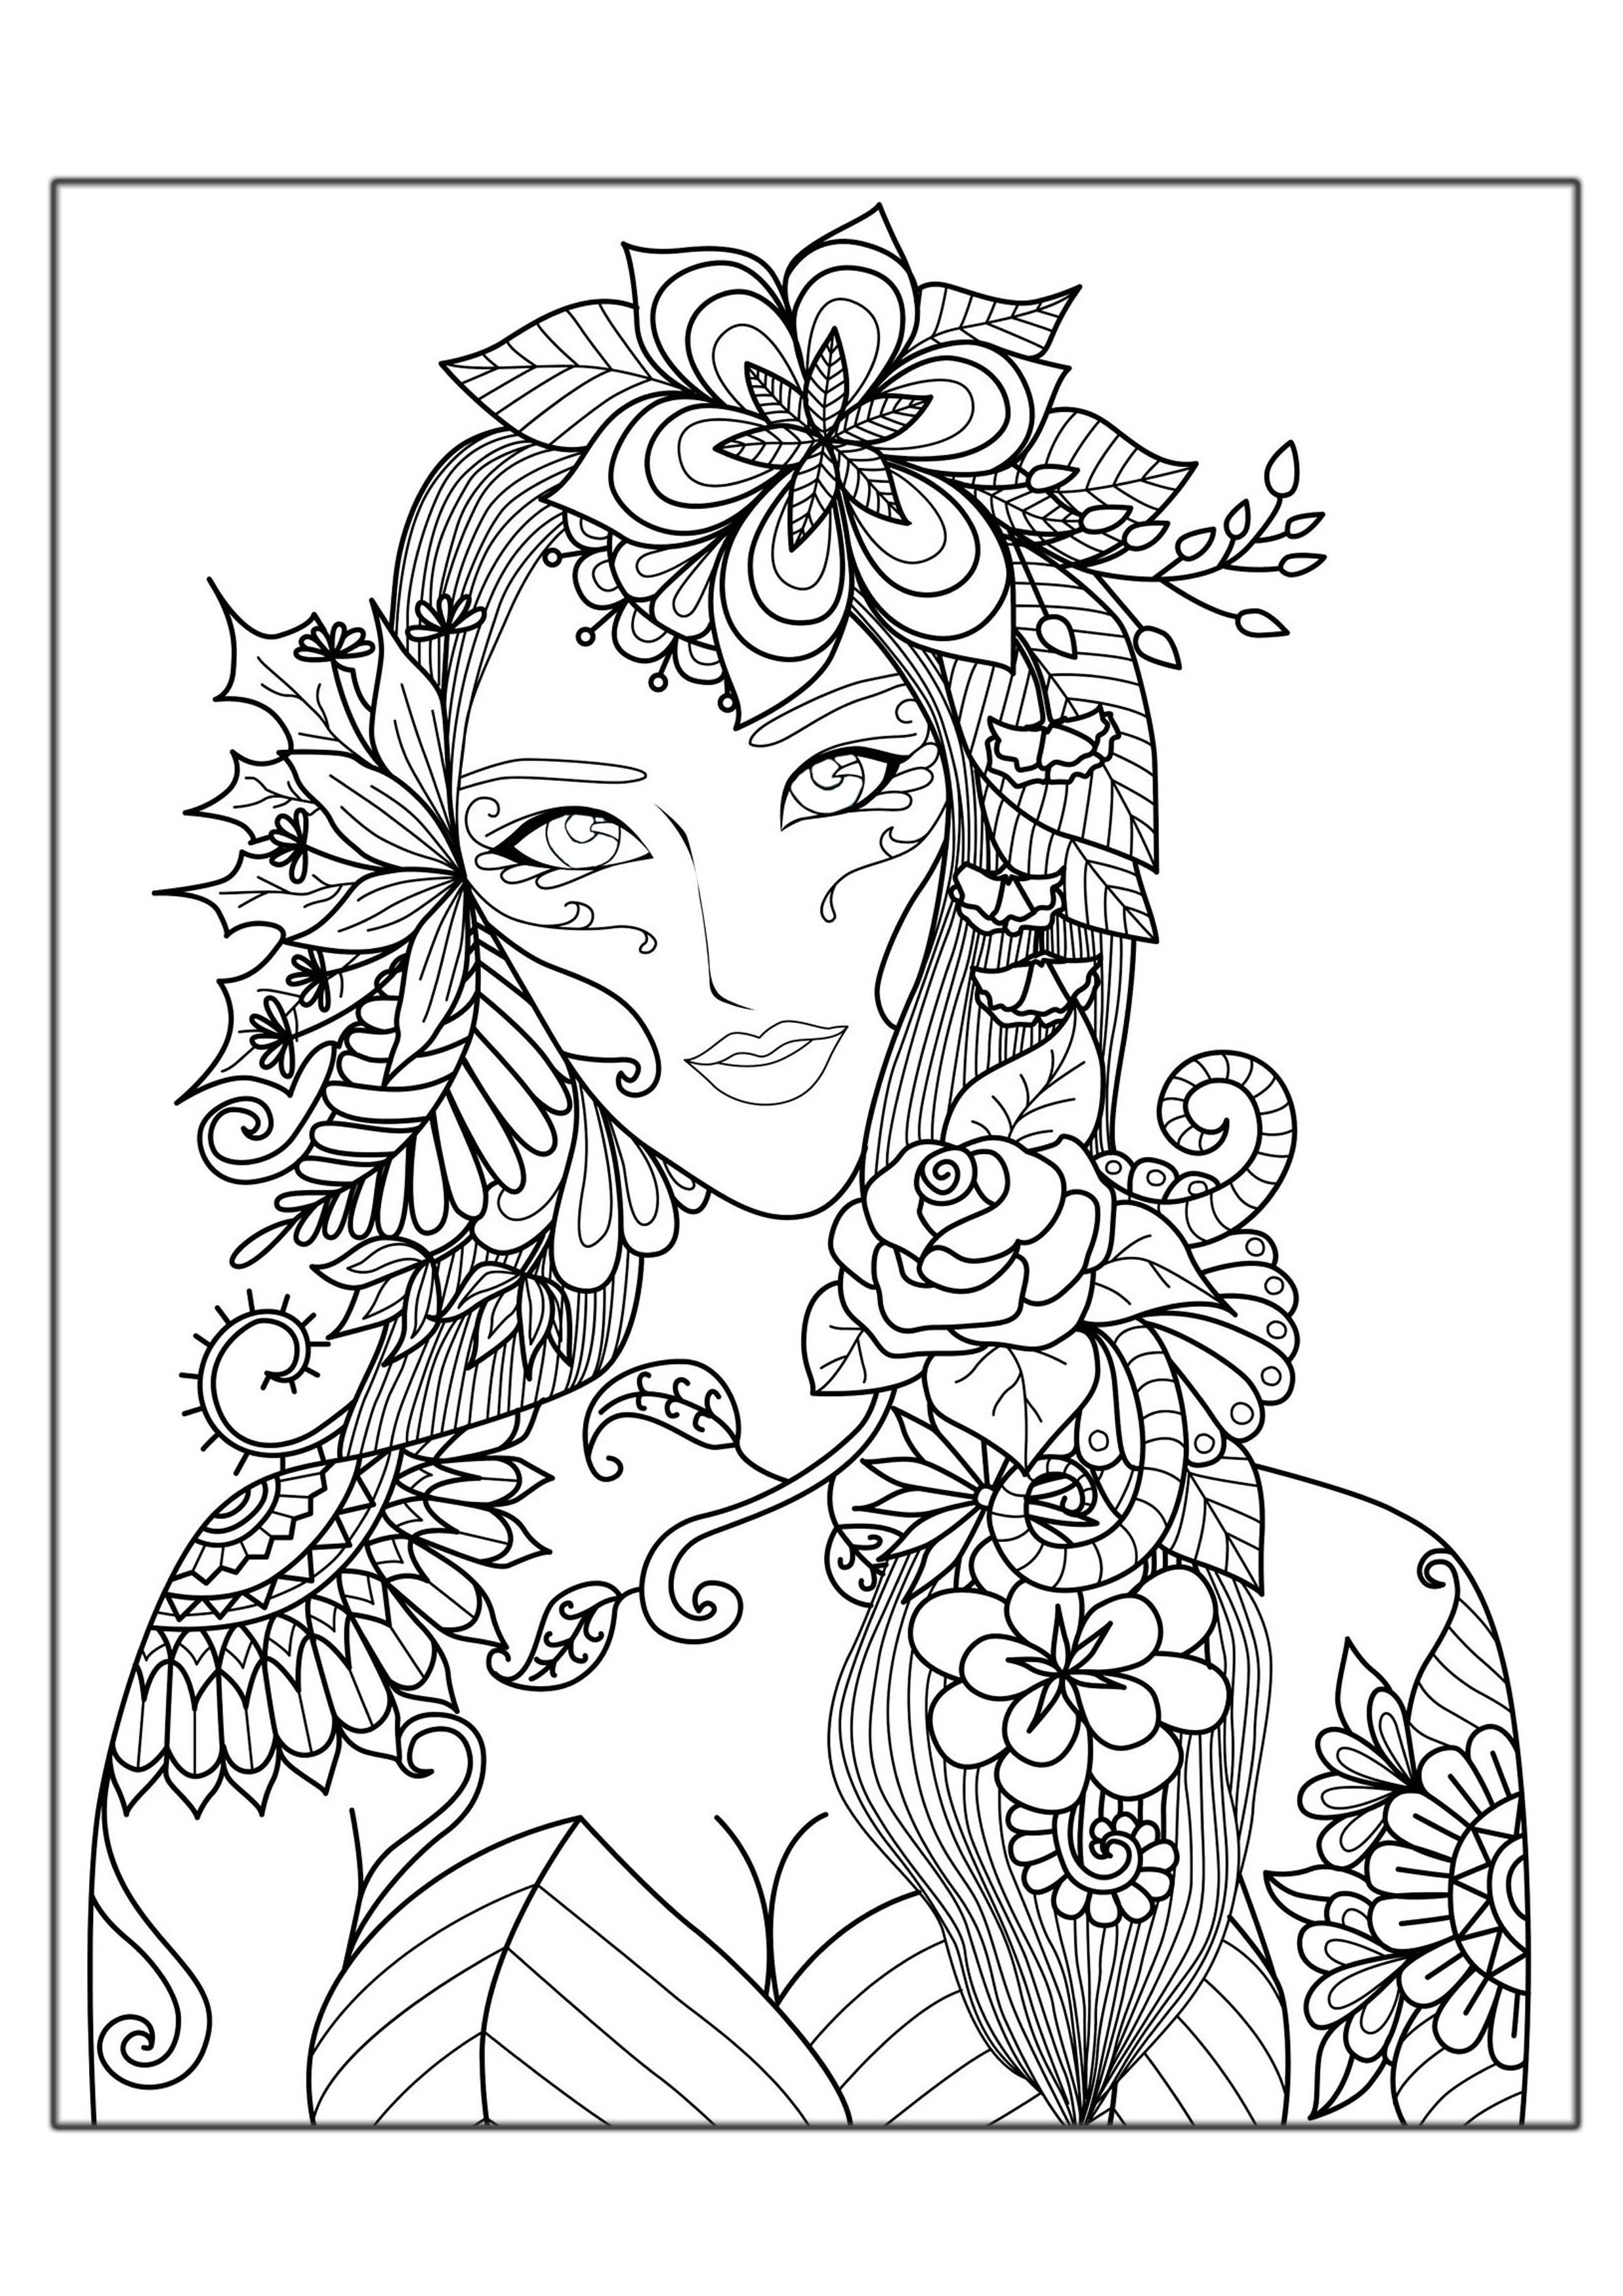 for coloring pictures free printable elsa coloring pages for kids best for pictures coloring